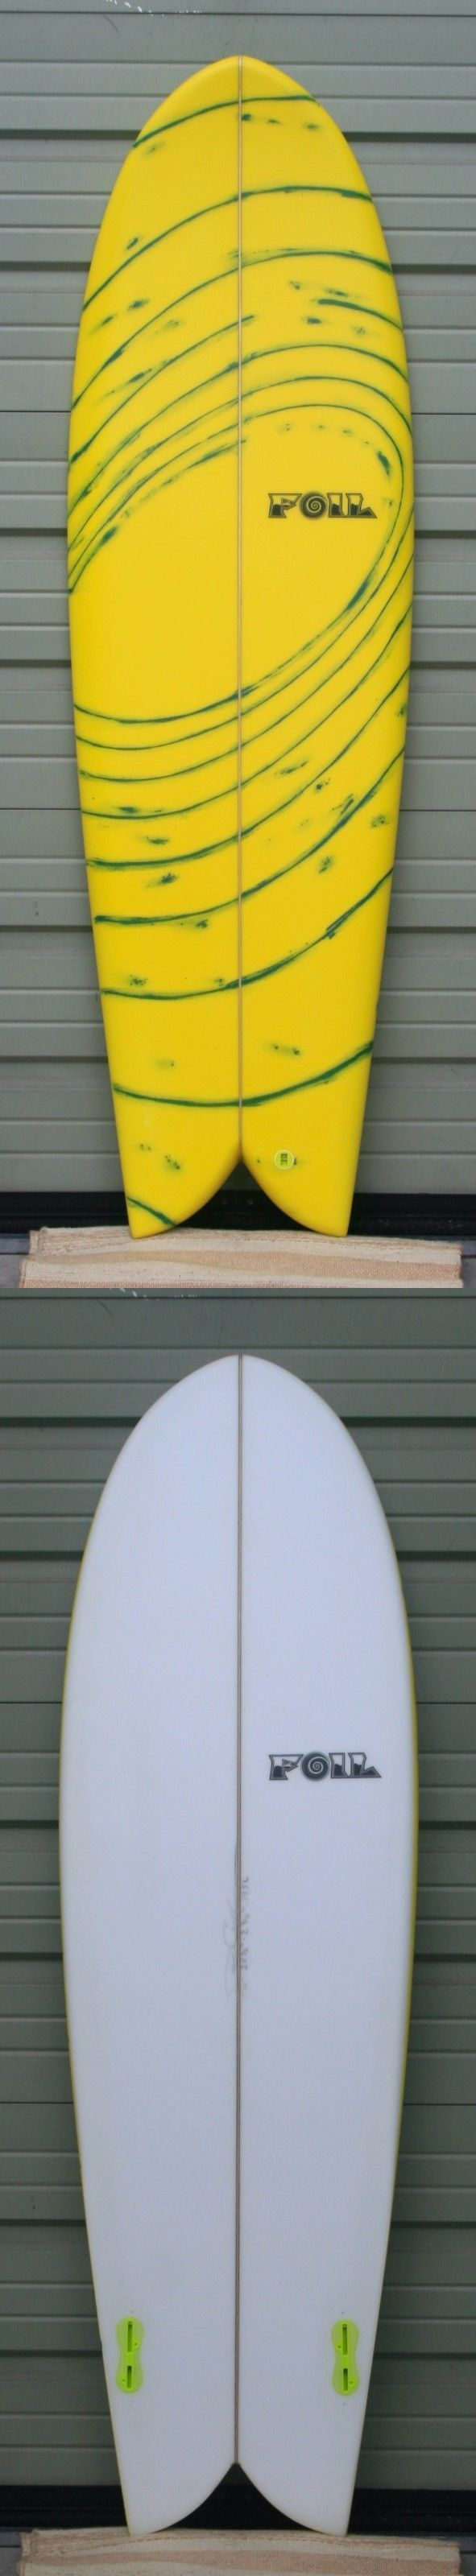 Surfboards 22710: New 5 10 Foil Retro Fish Surfboard -> BUY IT NOW ONLY: $425 on eBay!